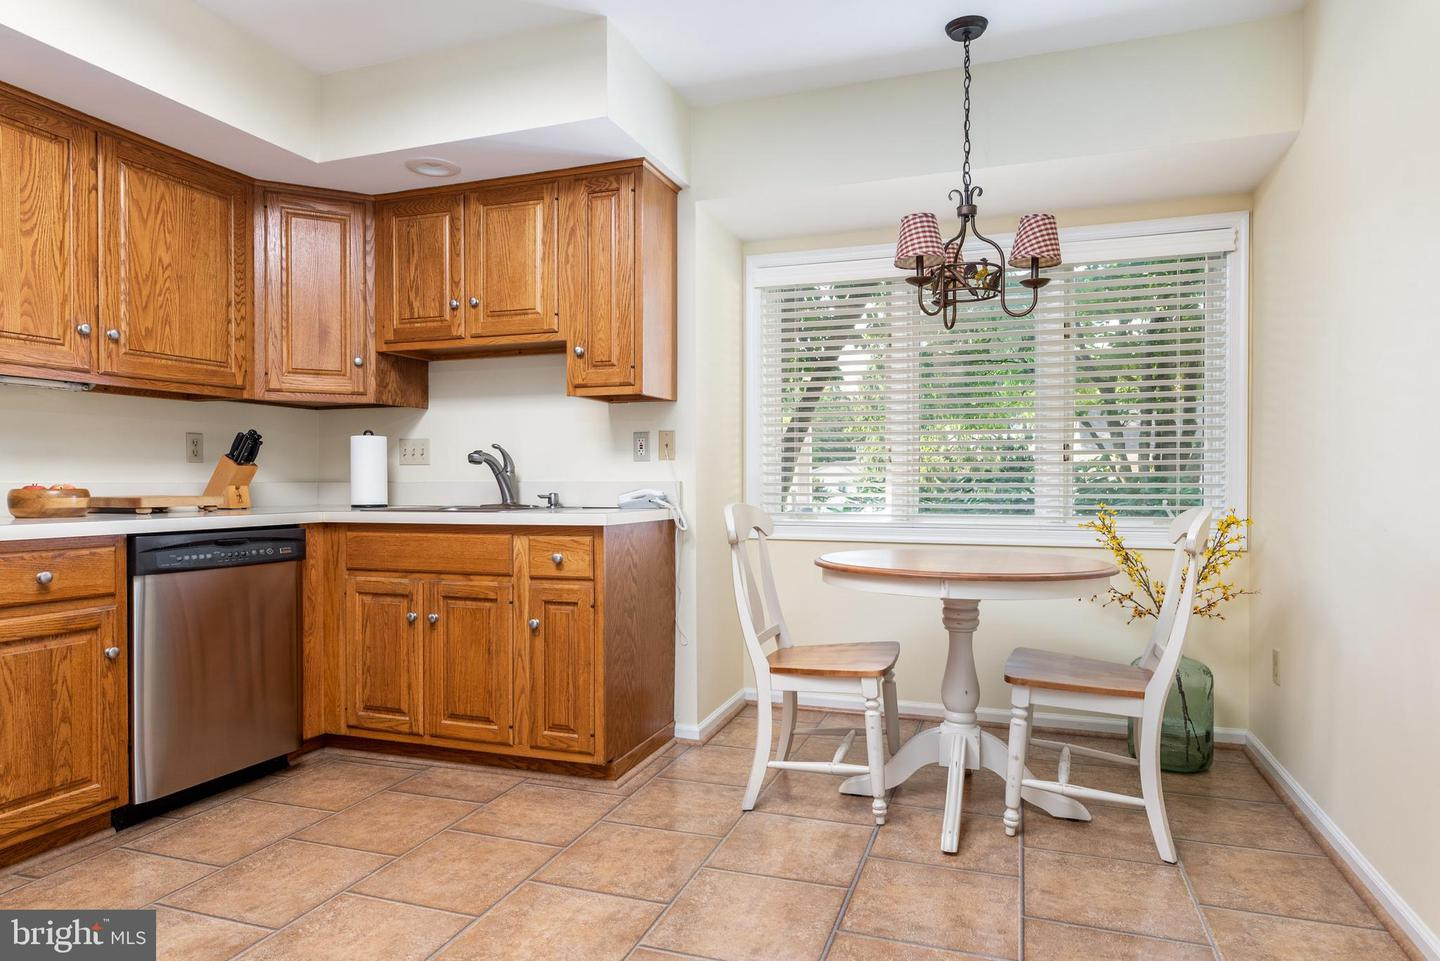 424 Eaton Way West Chester , PA 19380